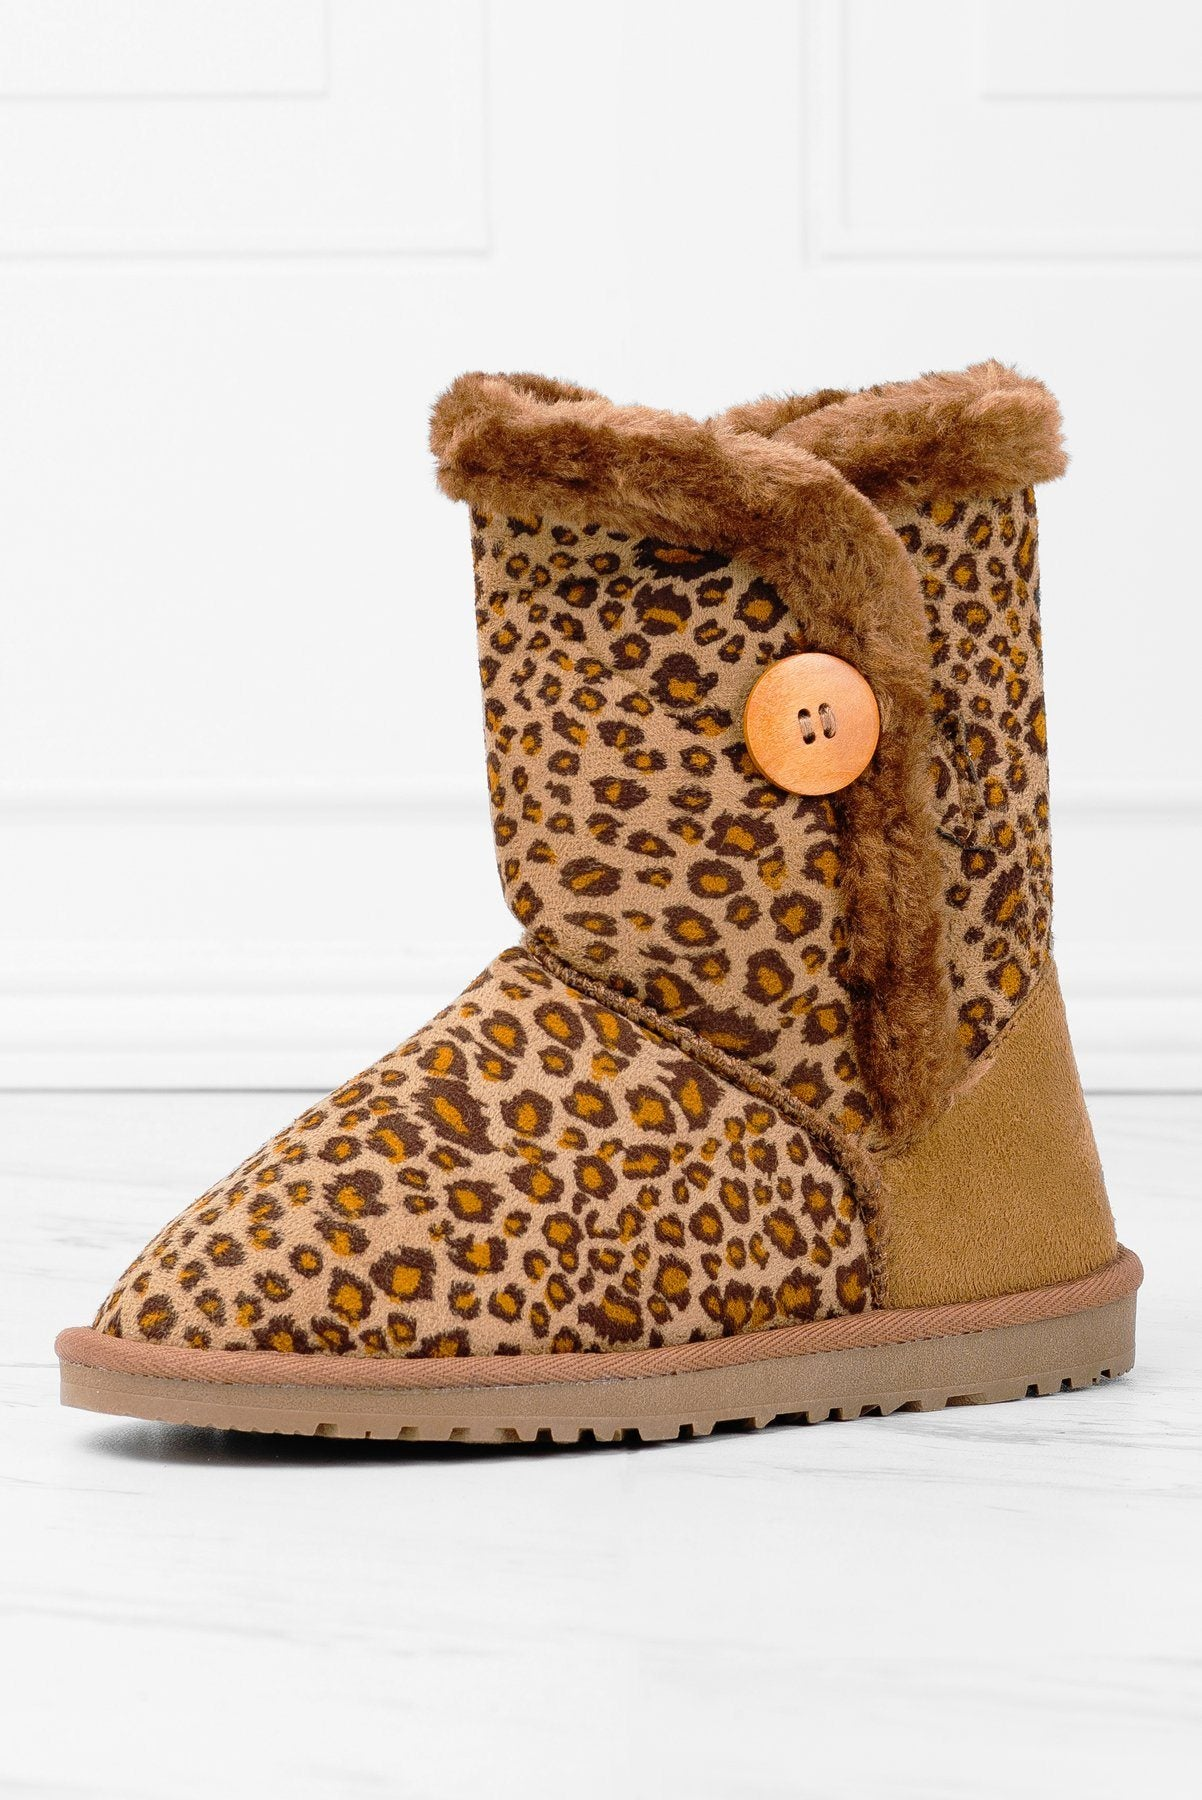 Shoes - Temptation Boots - Cheetah